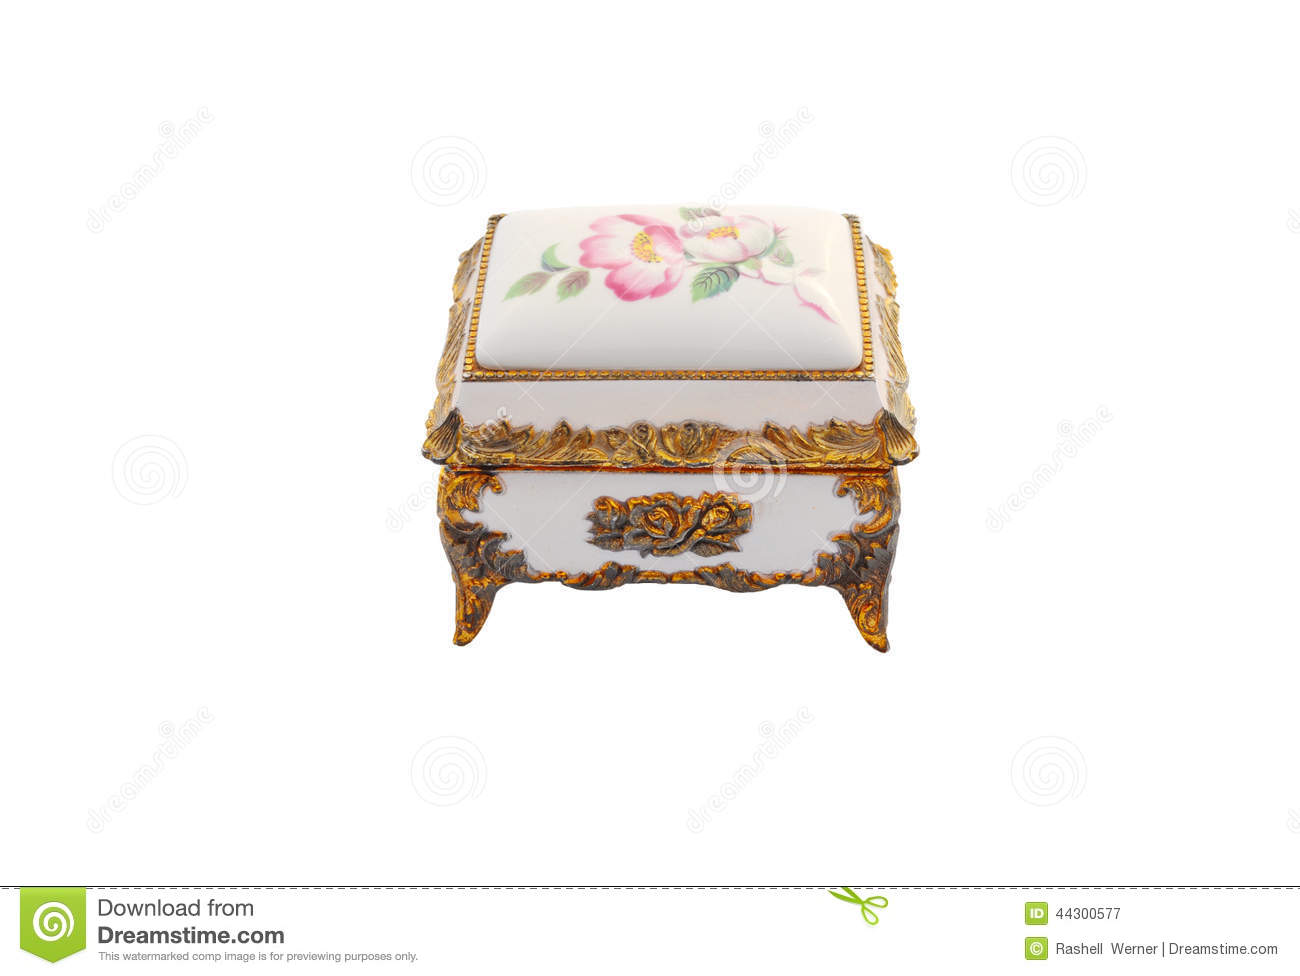 3 188 Antique Music Box Photos Free Royalty Free Stock Photos From Dreamstime